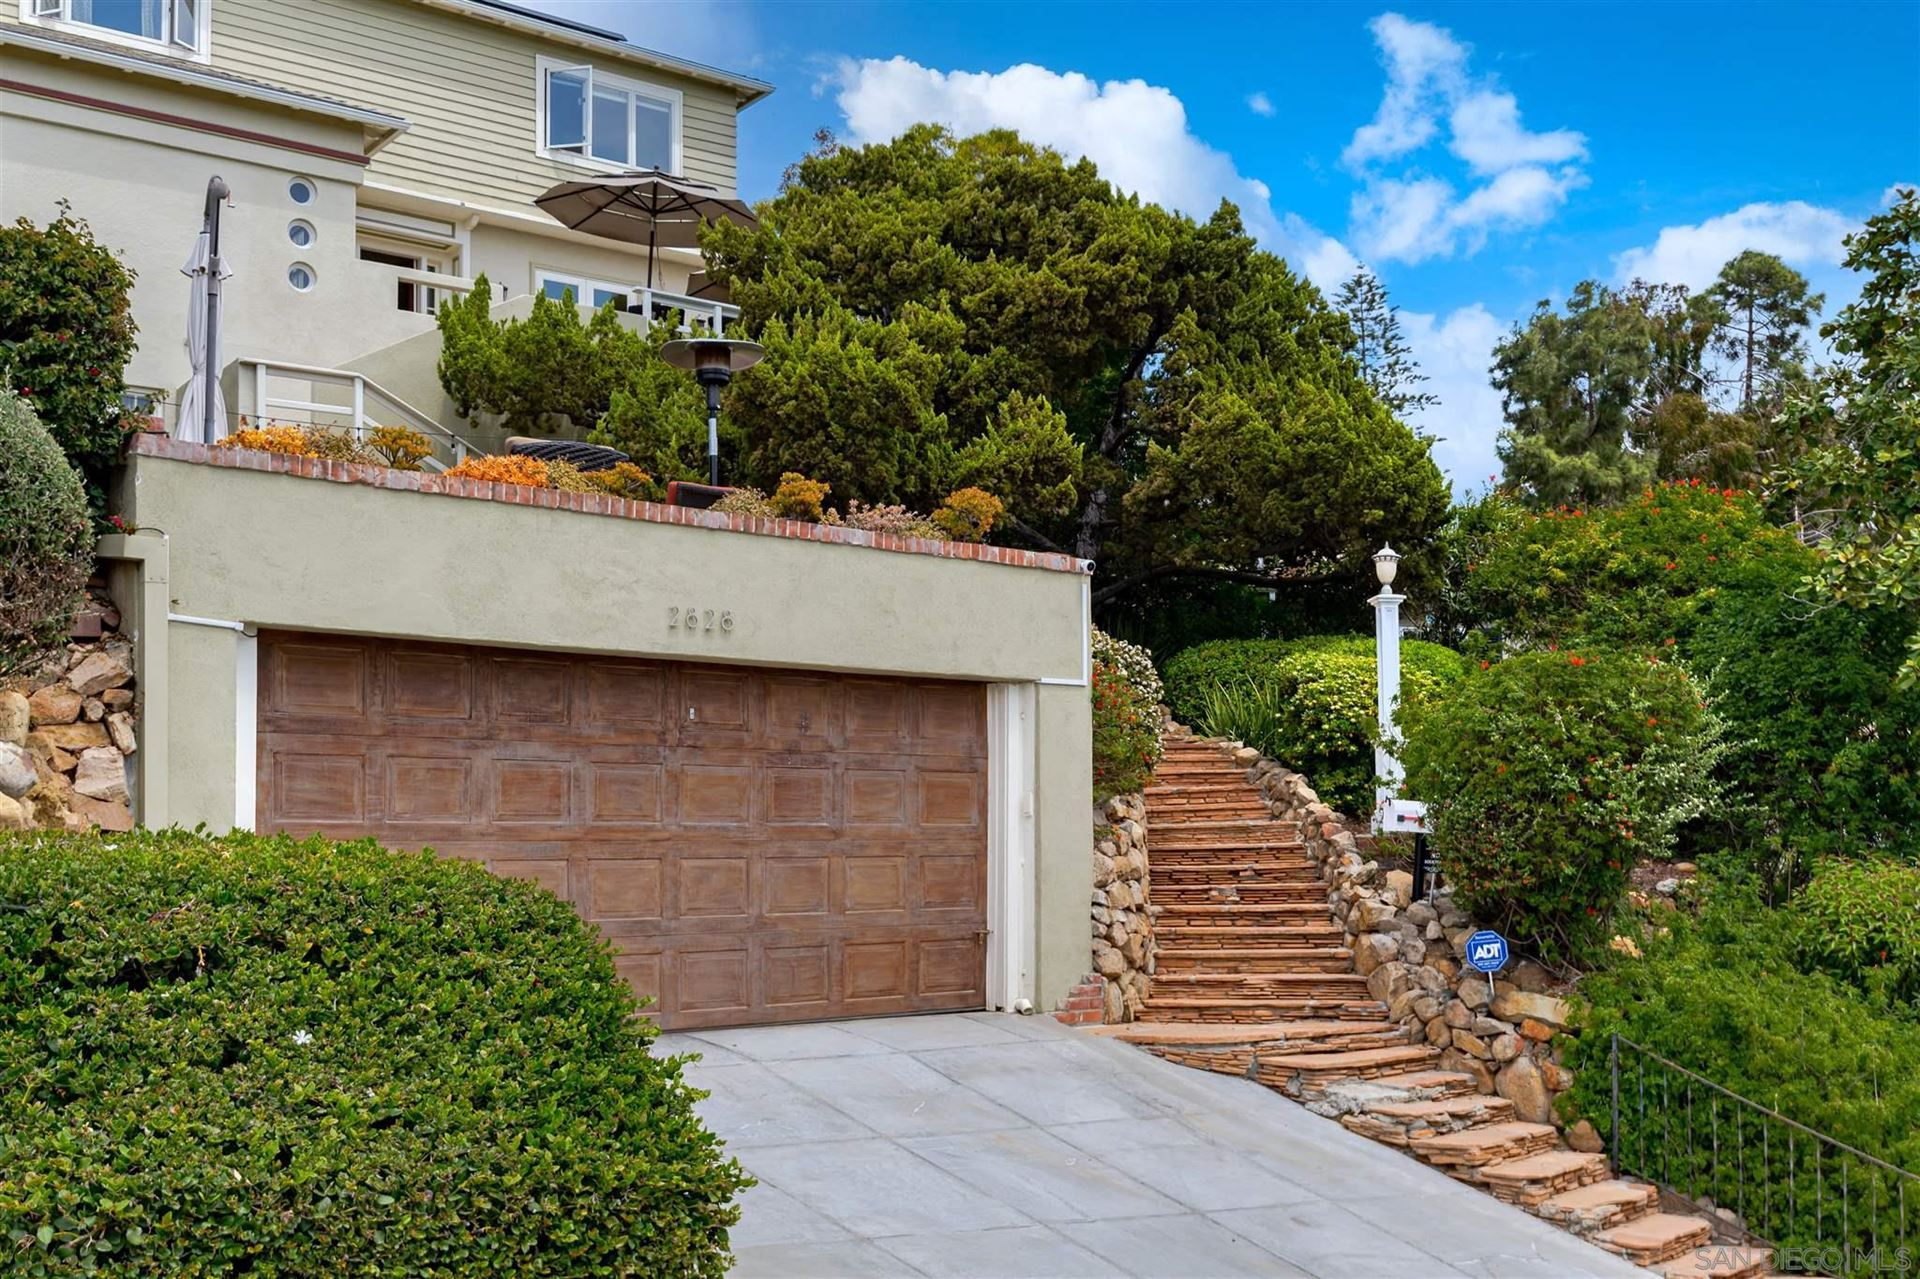 Photo for 2828 Maple, San Diego, CA 92104 (MLS # 210010068)